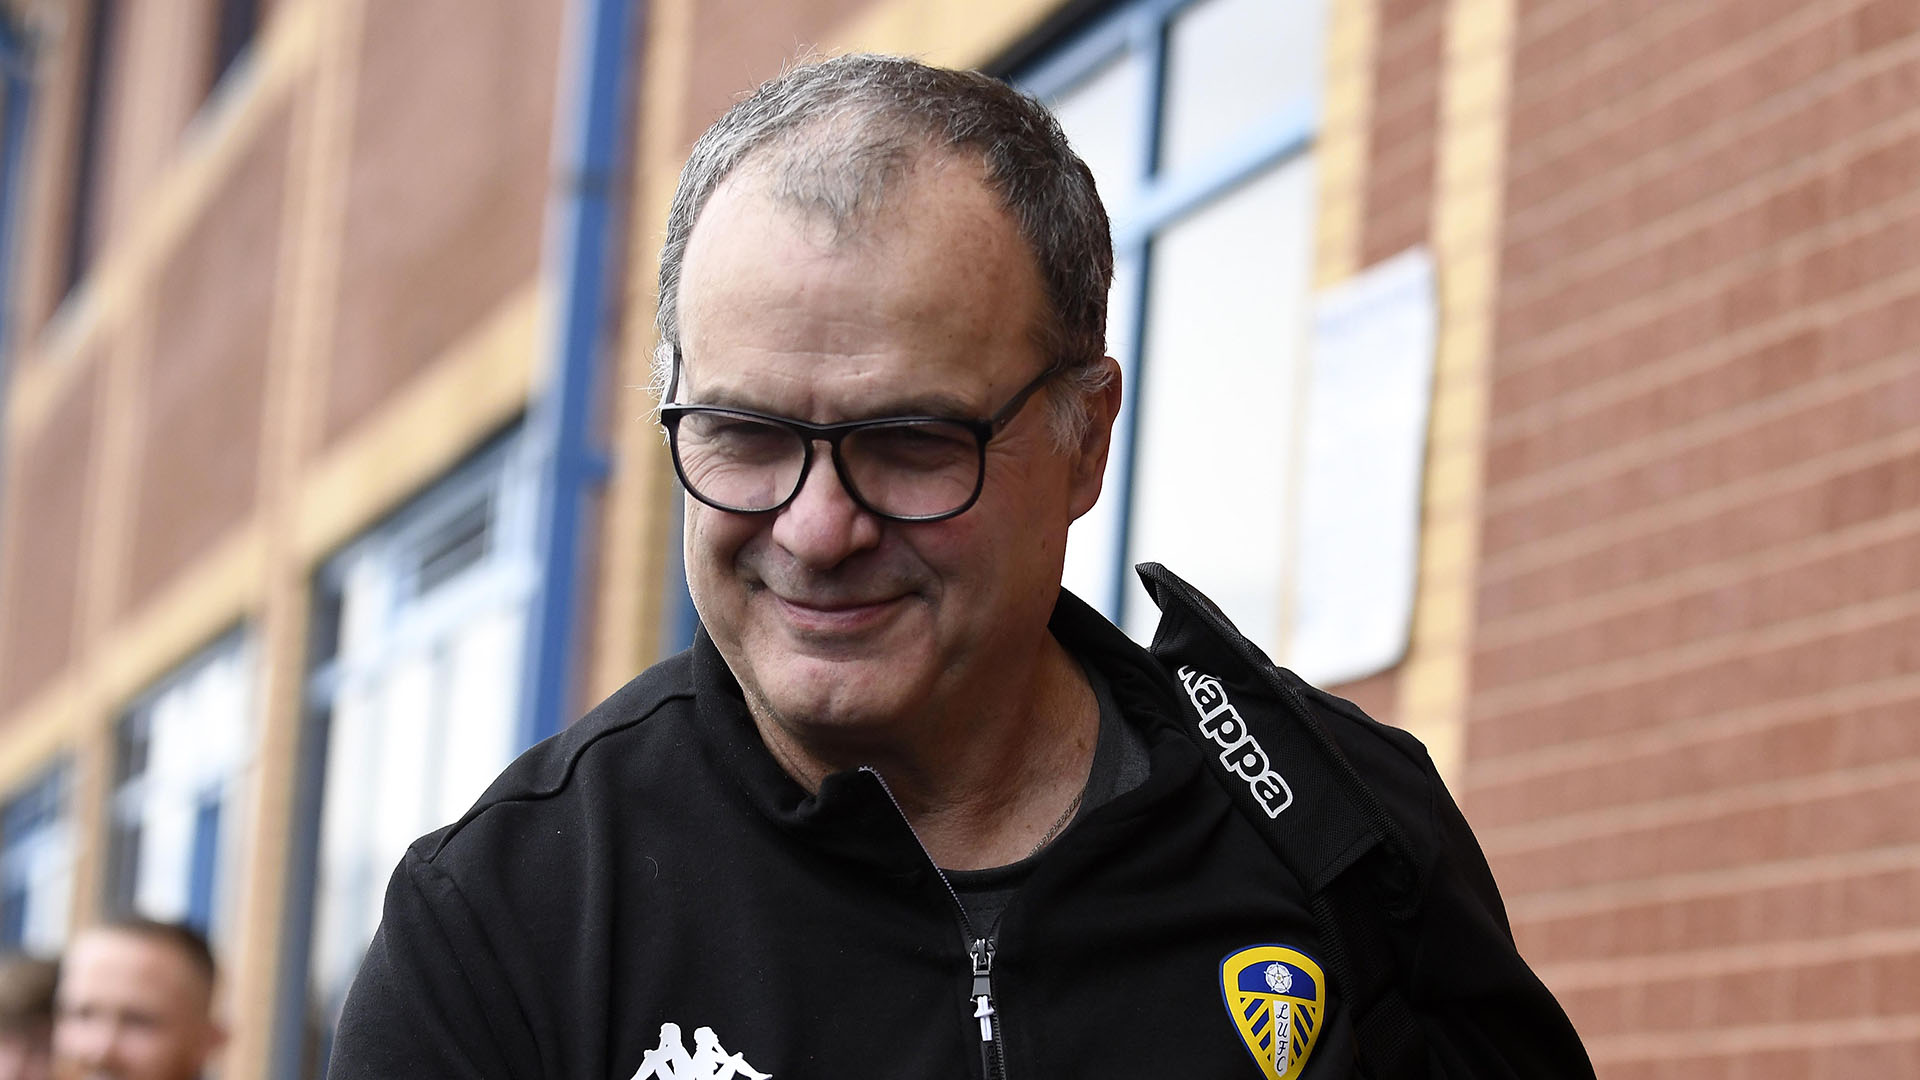 Marcelo Bielsa: Leeds have 'observed' all opponents but nothing 'illegal'